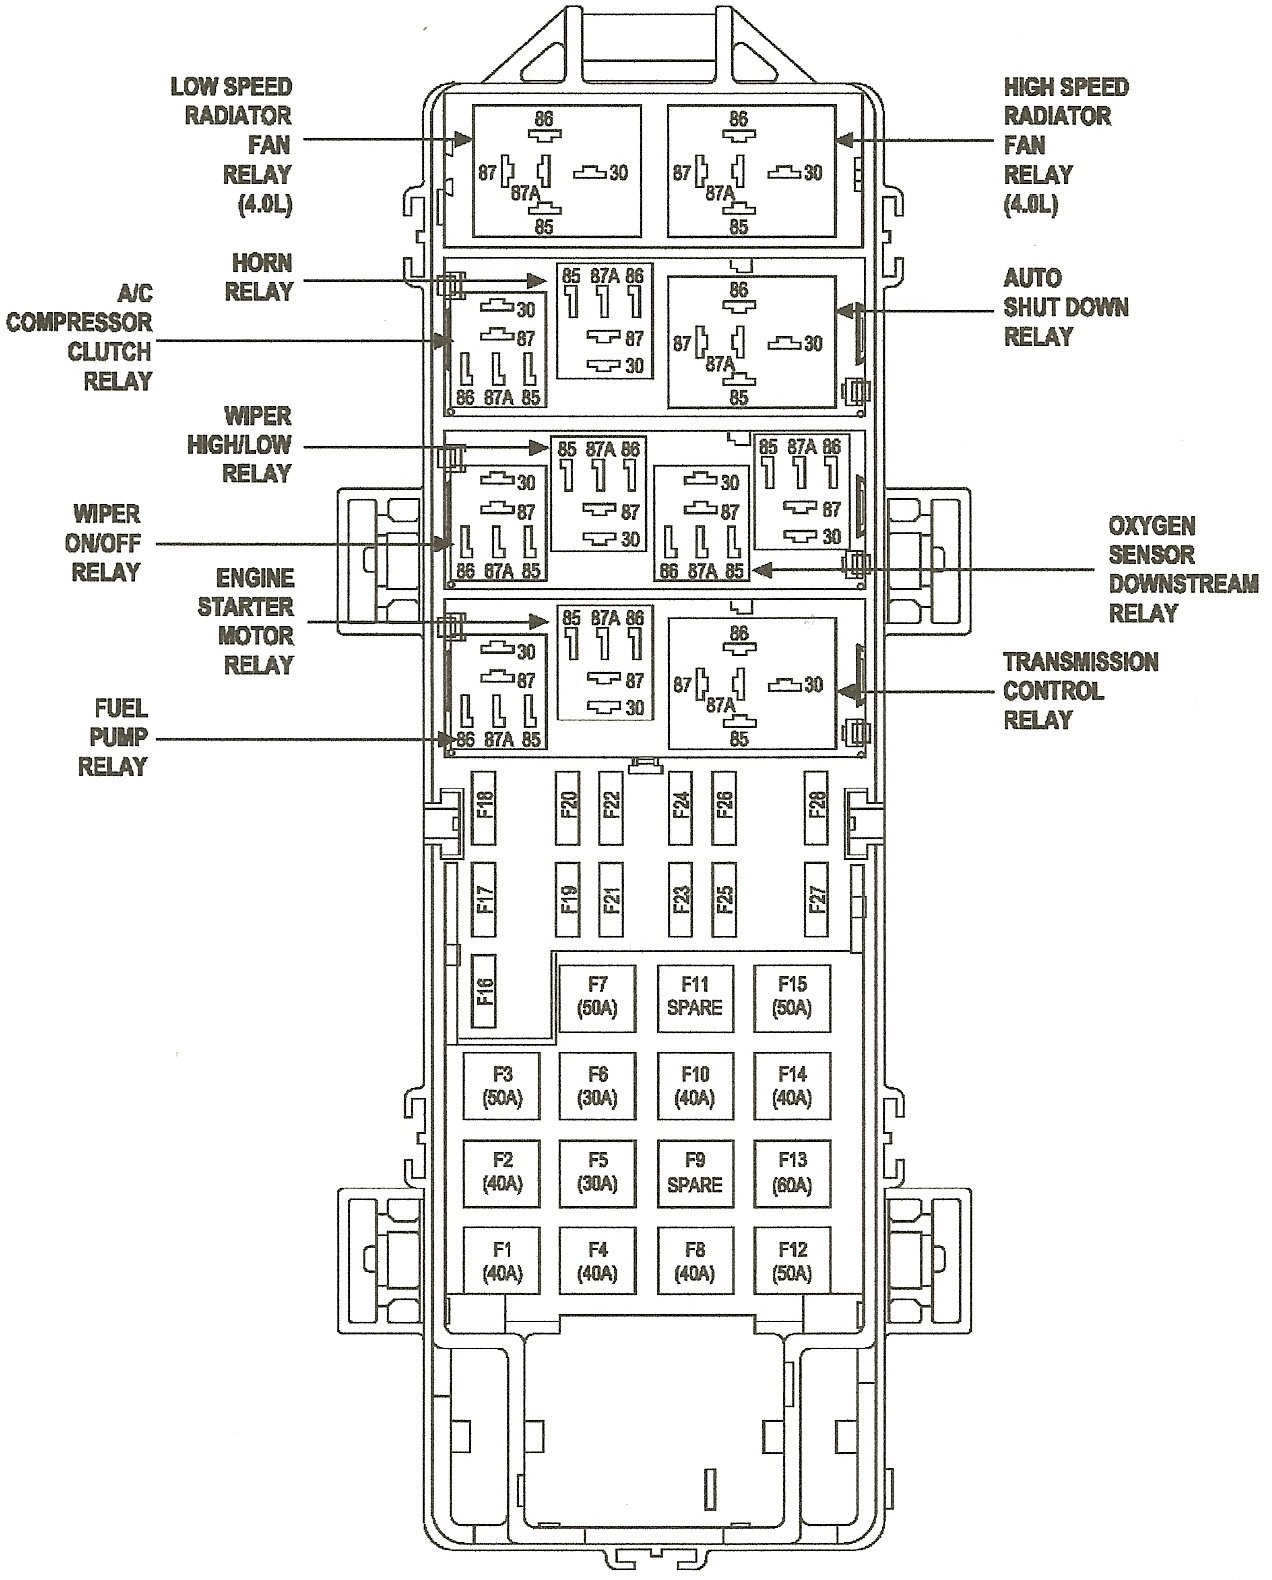 04 jeep liberty fuse box diagram  04  free engine image